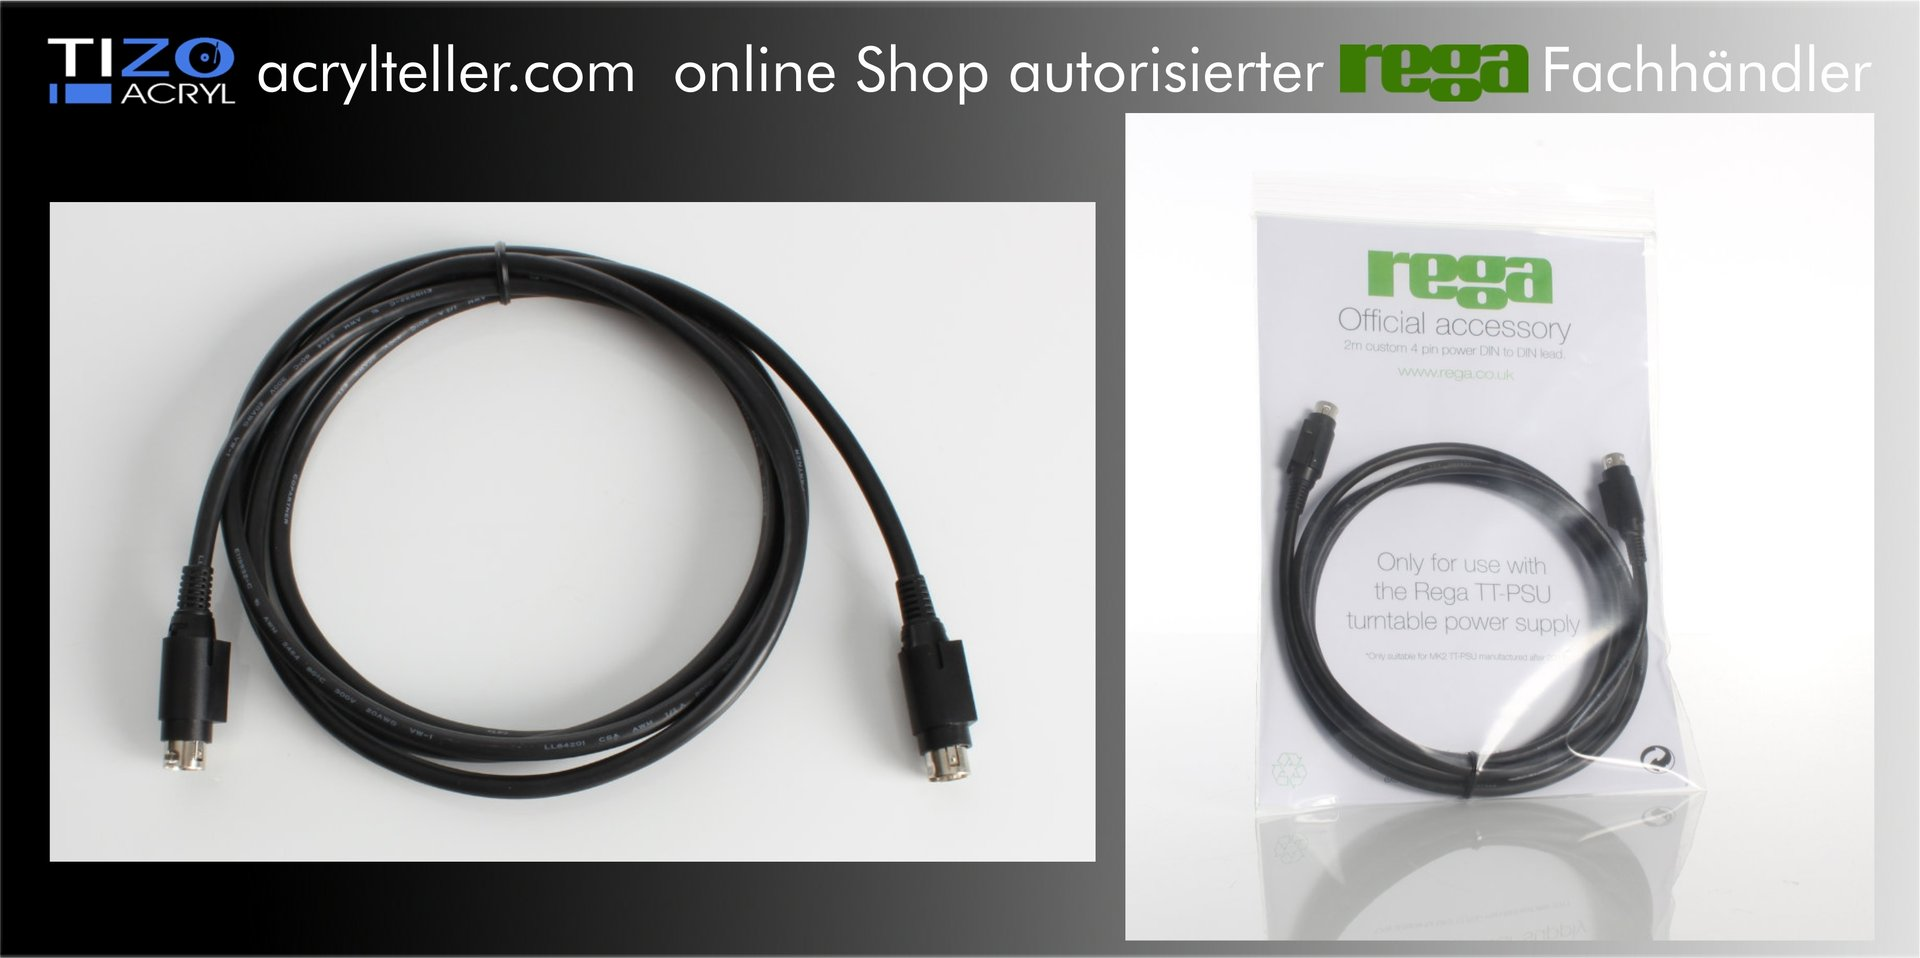 rega NEO /& TTPSU power supply 2M connecting Cable to turntable AUTHORIZED-DEALER